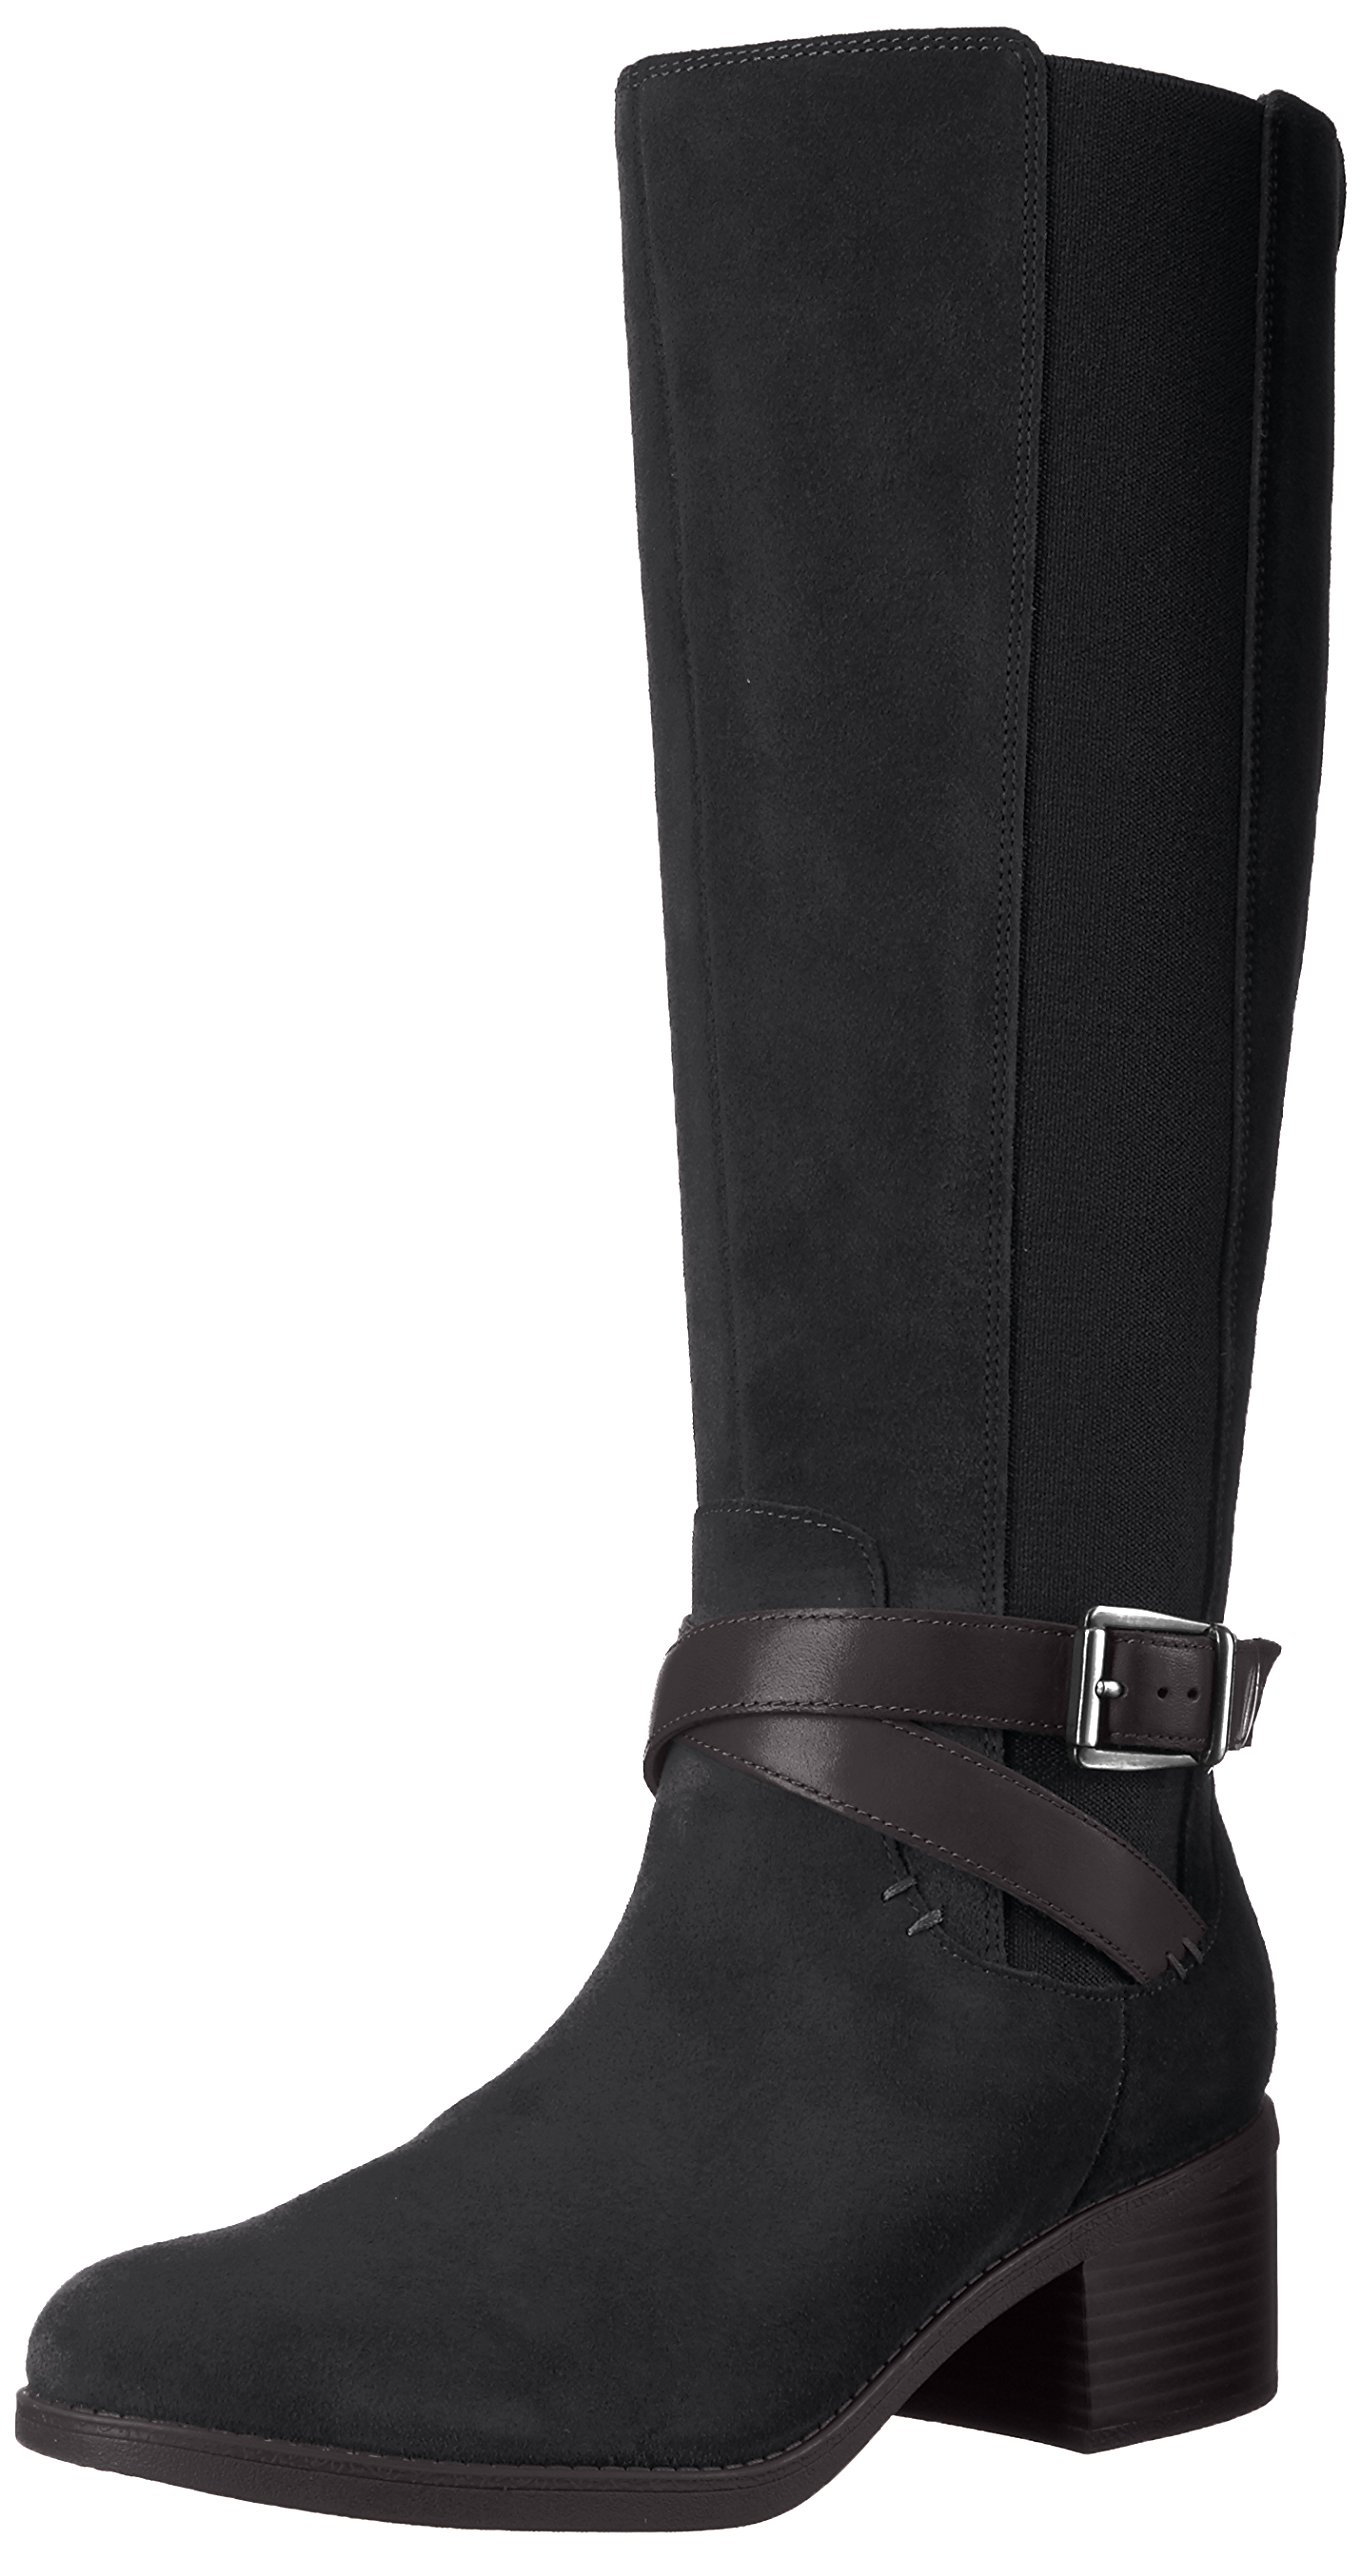 Clarks Women's Emslie Sinai Wide Calf Winter Boot, Black, 6 M US by CLARKS